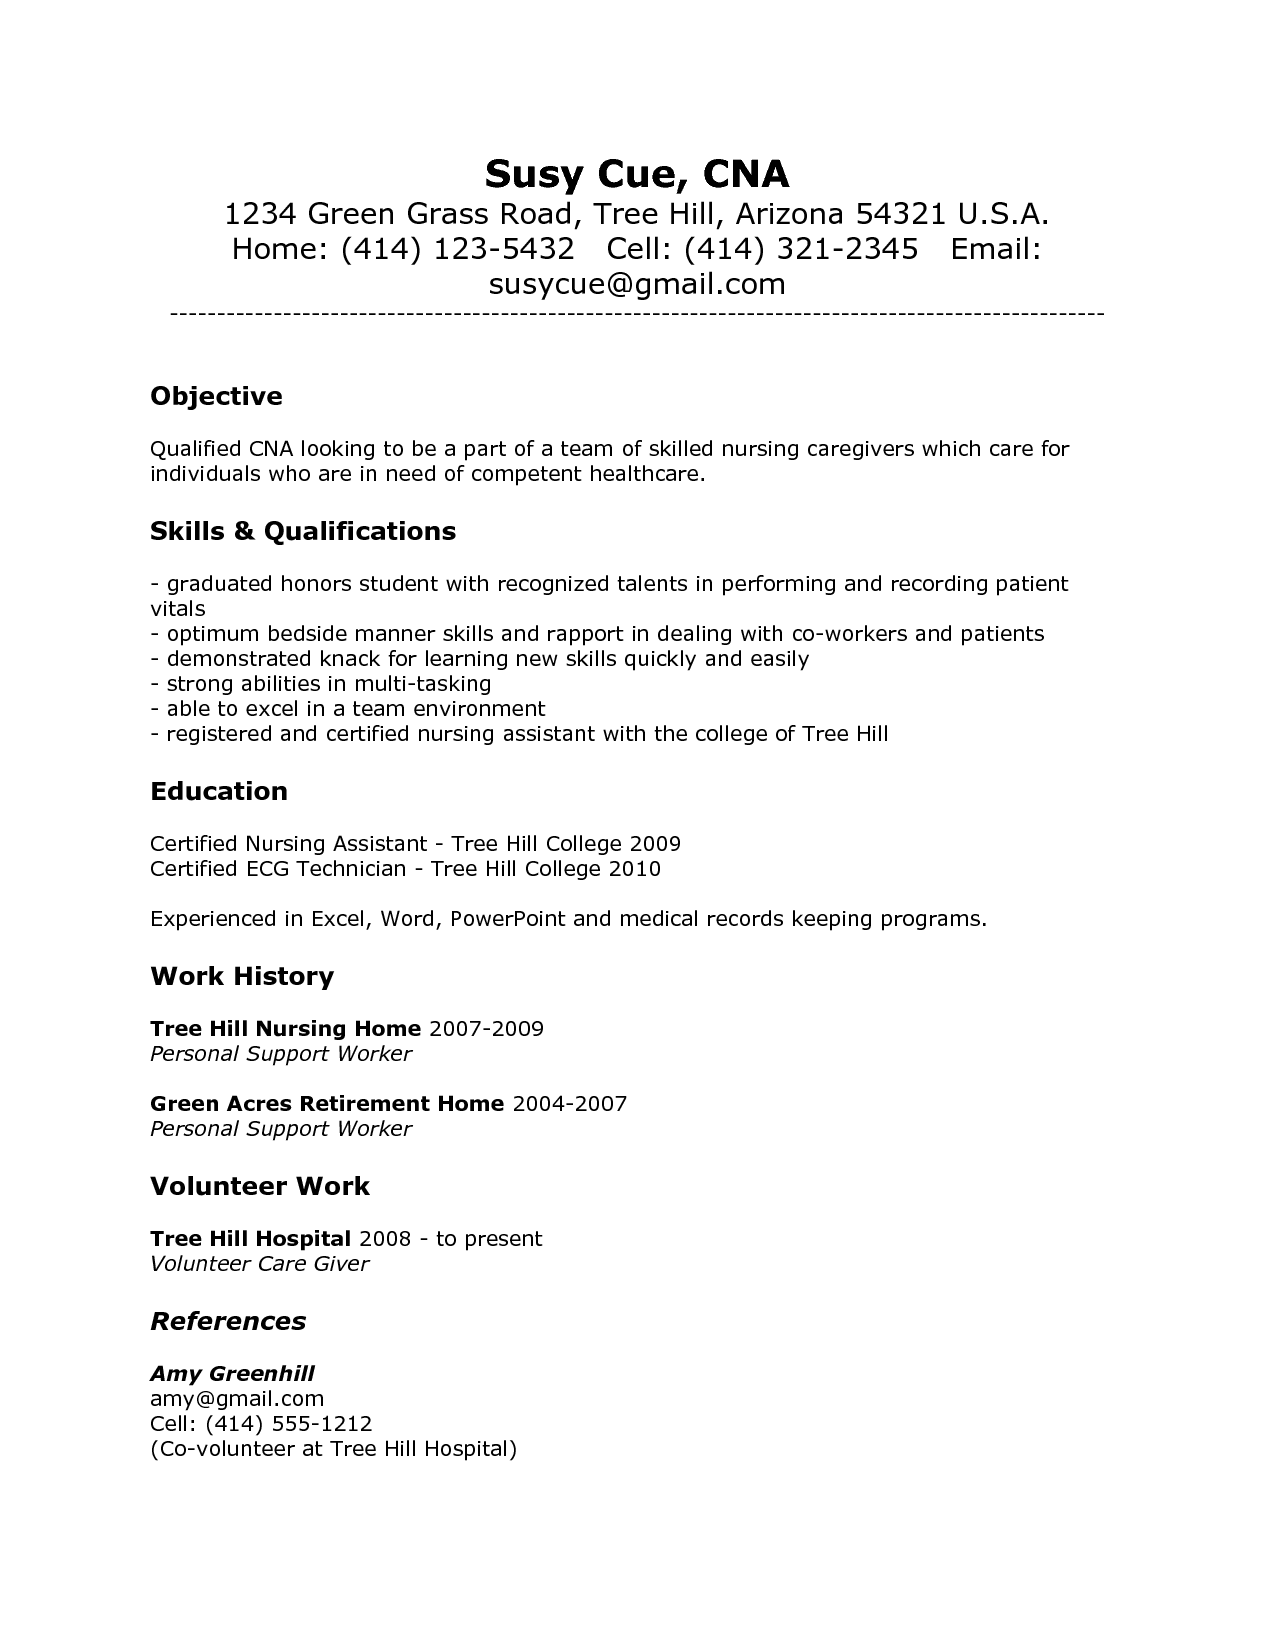 Cna Resume Objective Statement Examples Brilliant Resume Examples Cna  Pinterest  Resume Examples And Resume Objective